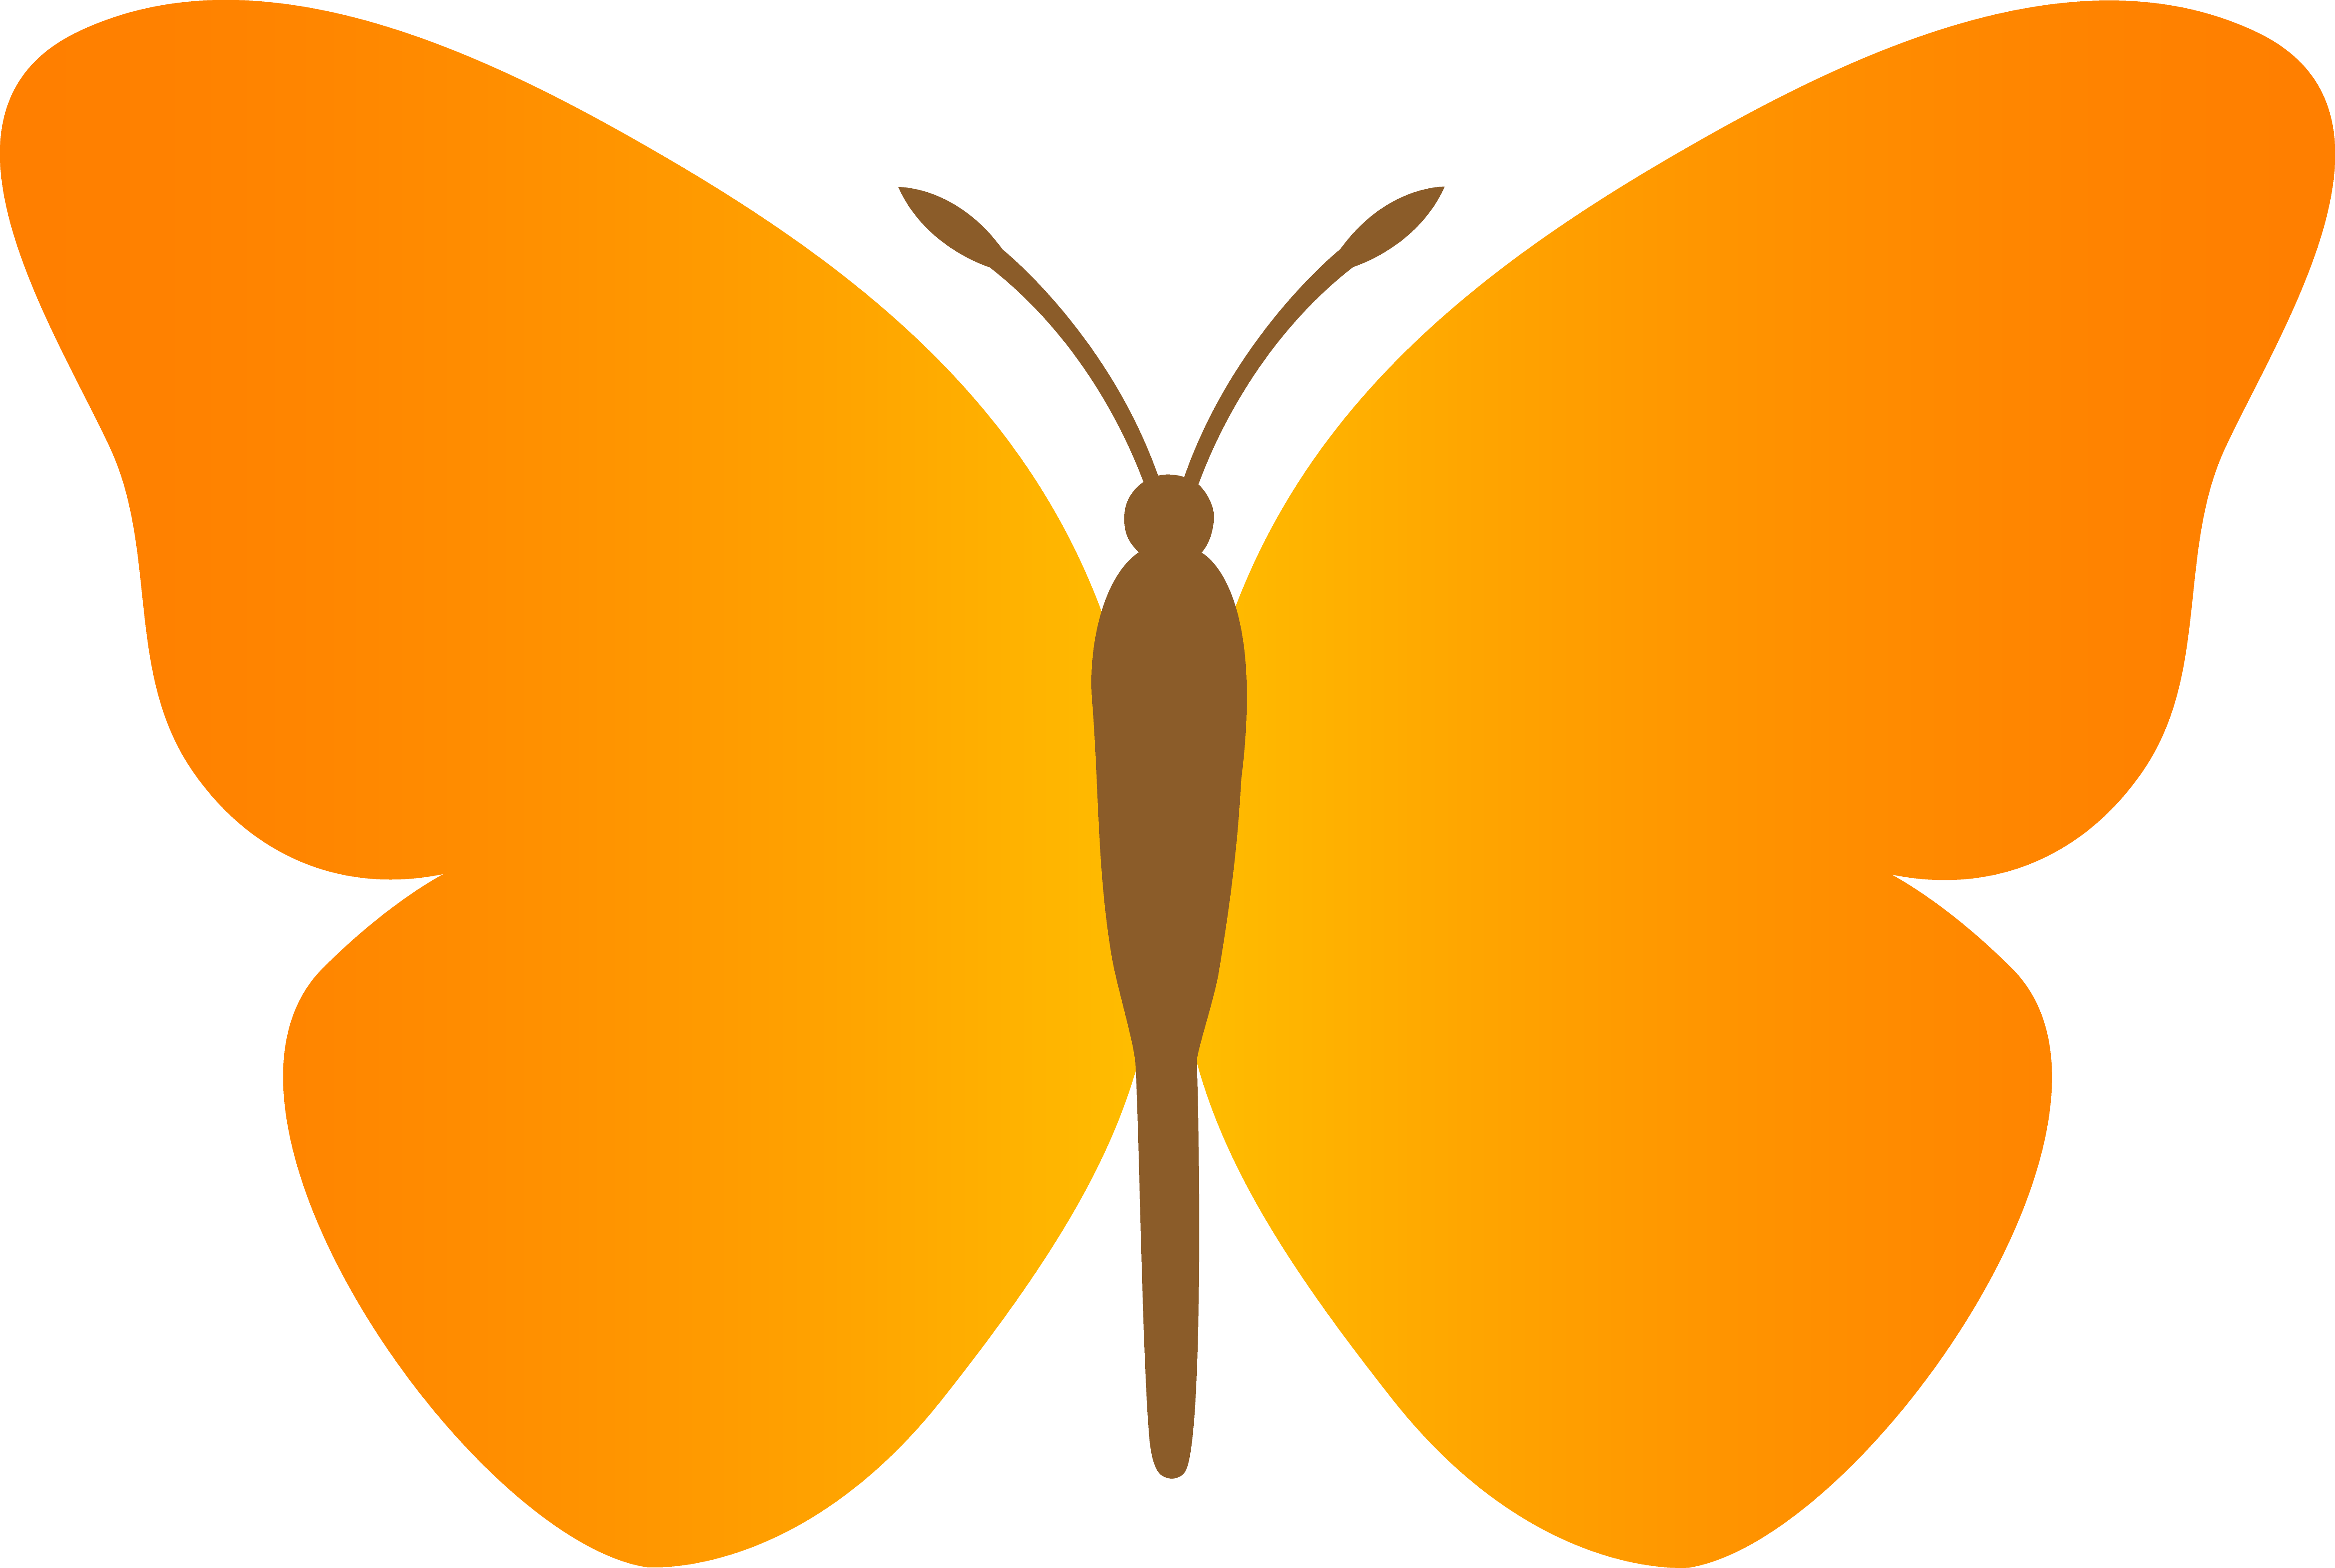 Clipart Butterfly Outline | Clipart Panda - Free Clipart Images